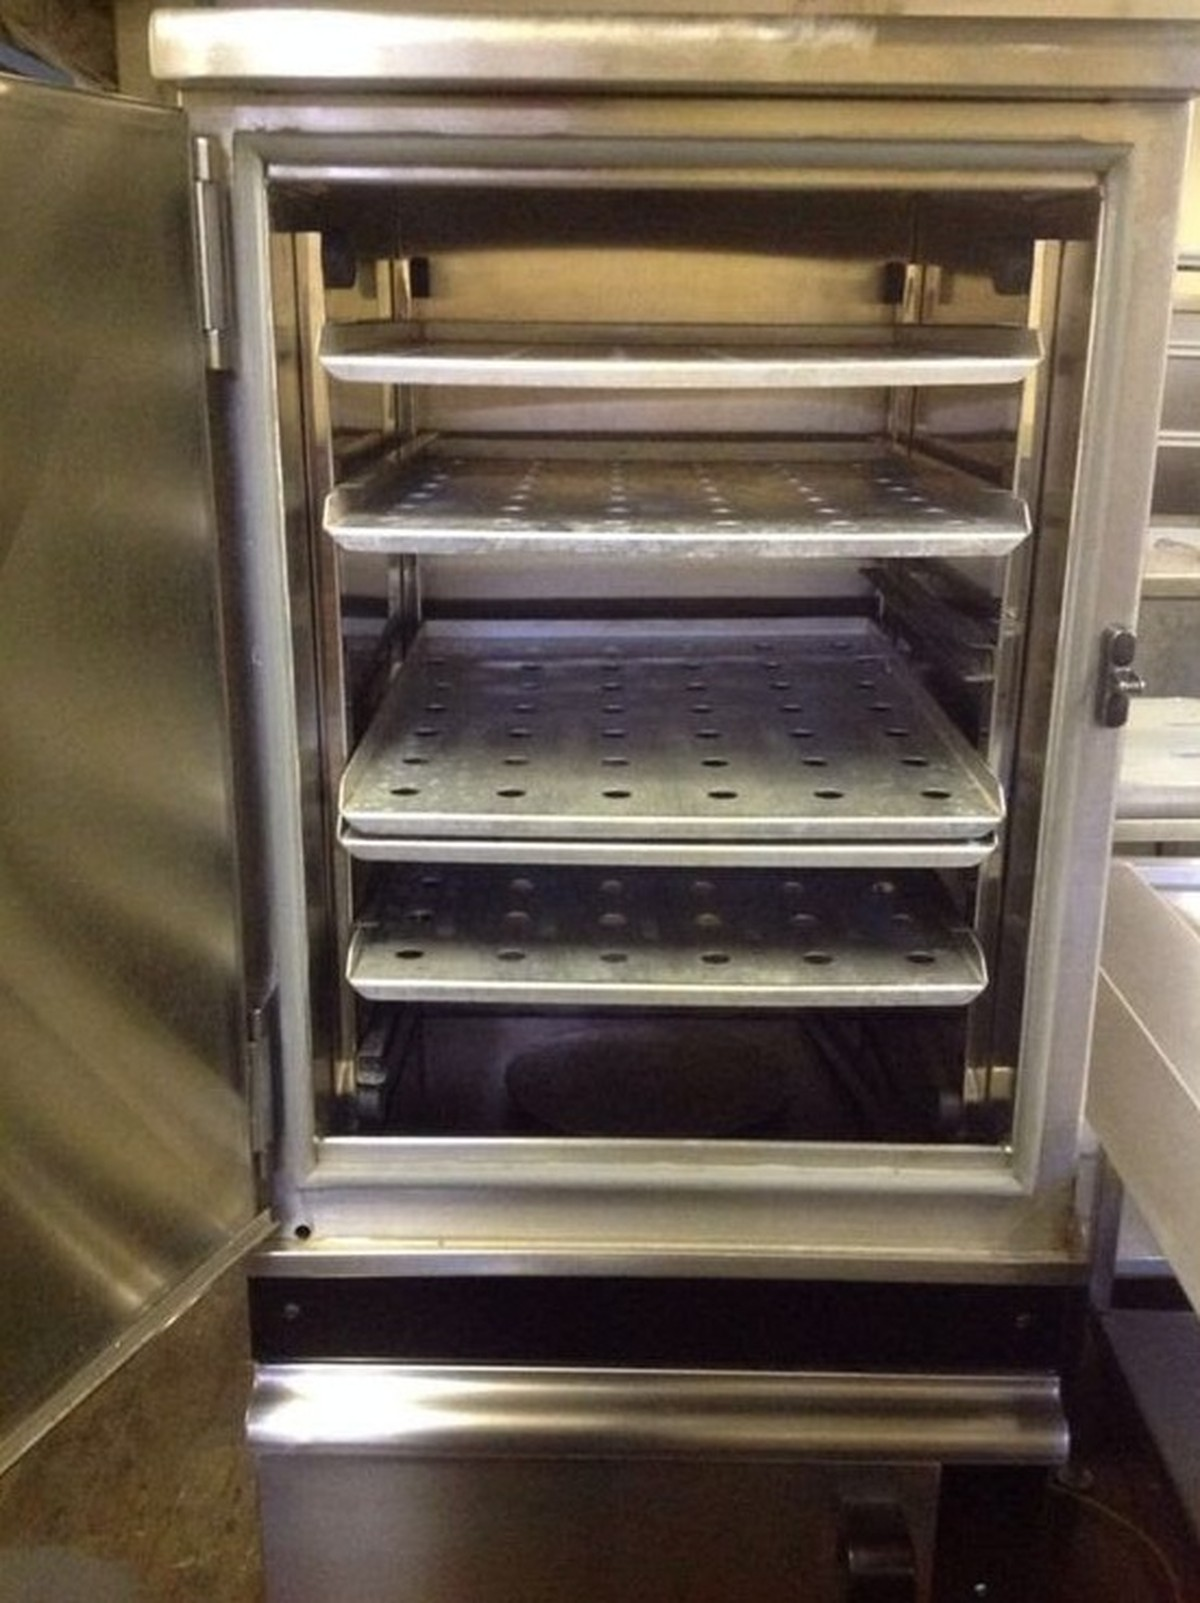 Secondhand Catering Equipment Steam Cookers Moorwood